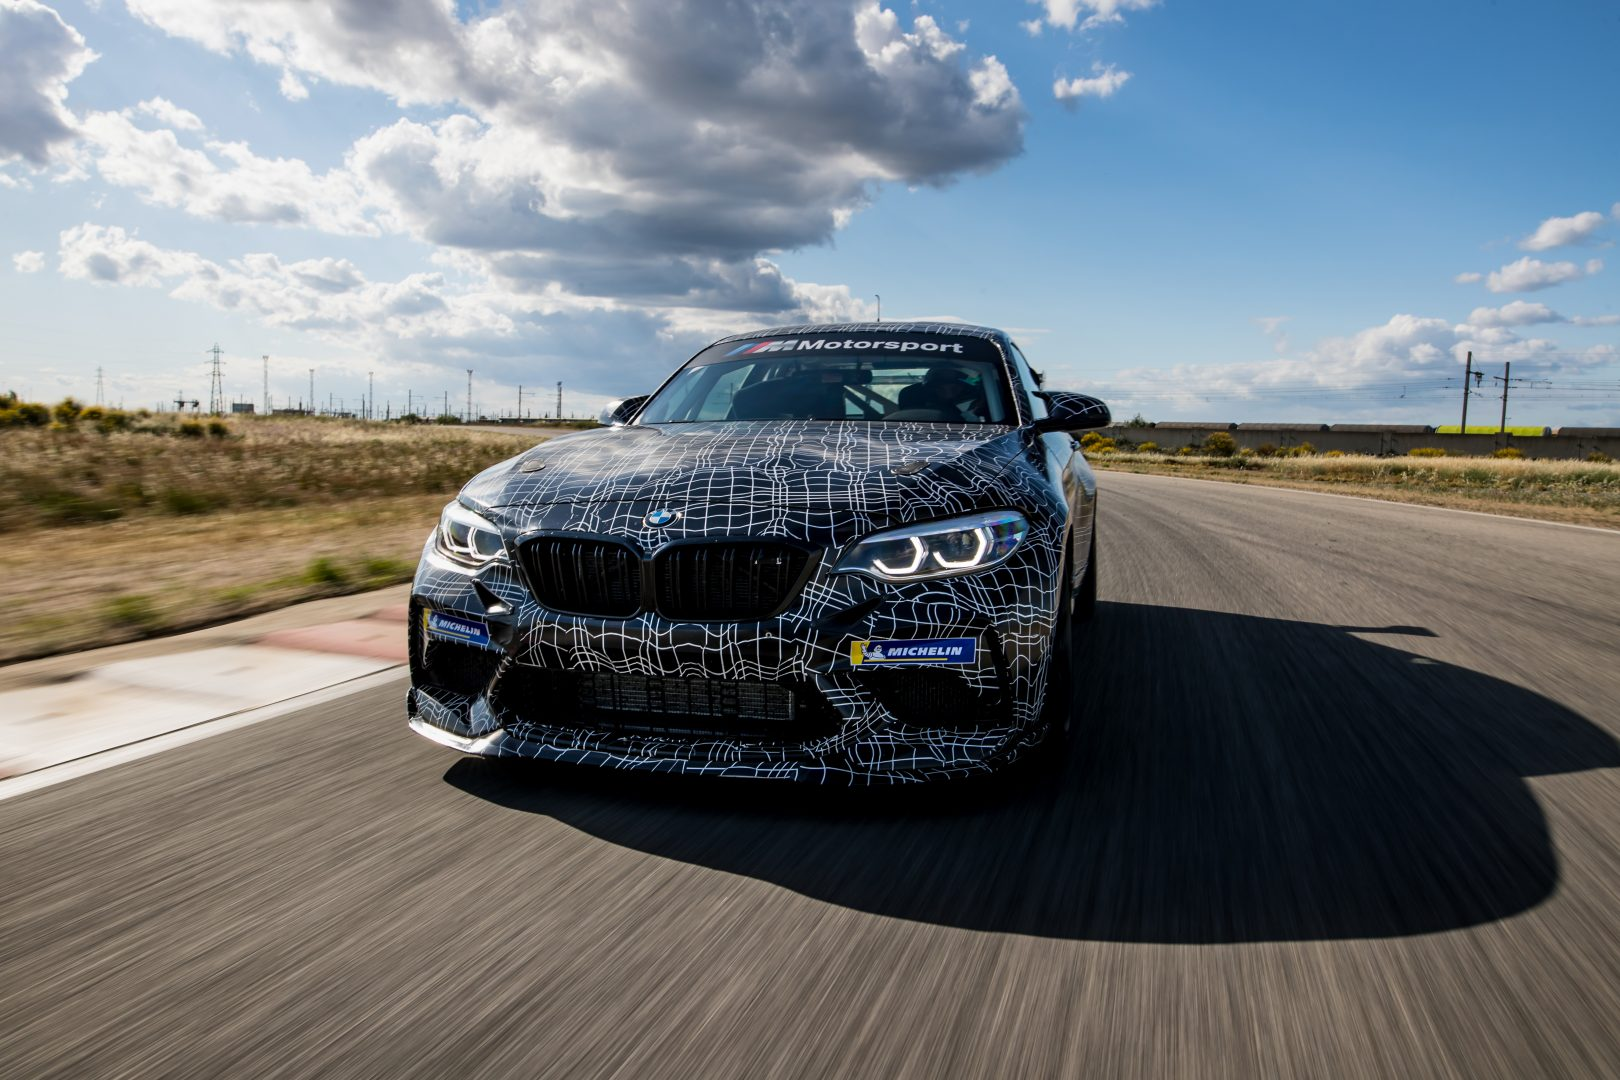 New Entry-Level BMW Race Car Based On The M2 Competition